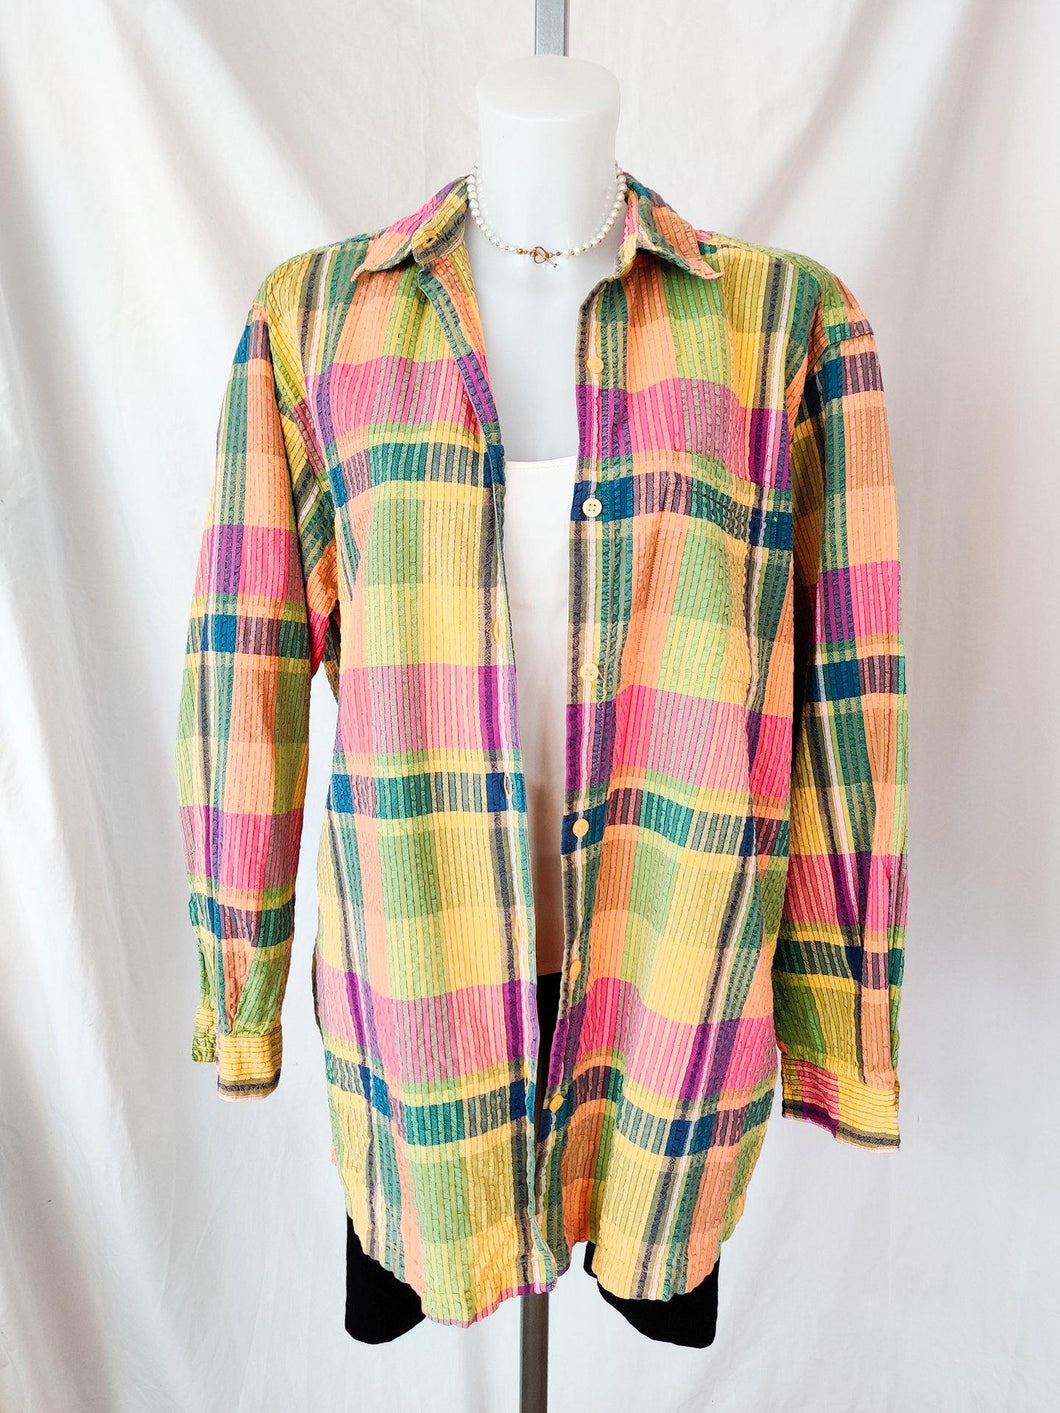 Vintage colourful patterned button up shirt